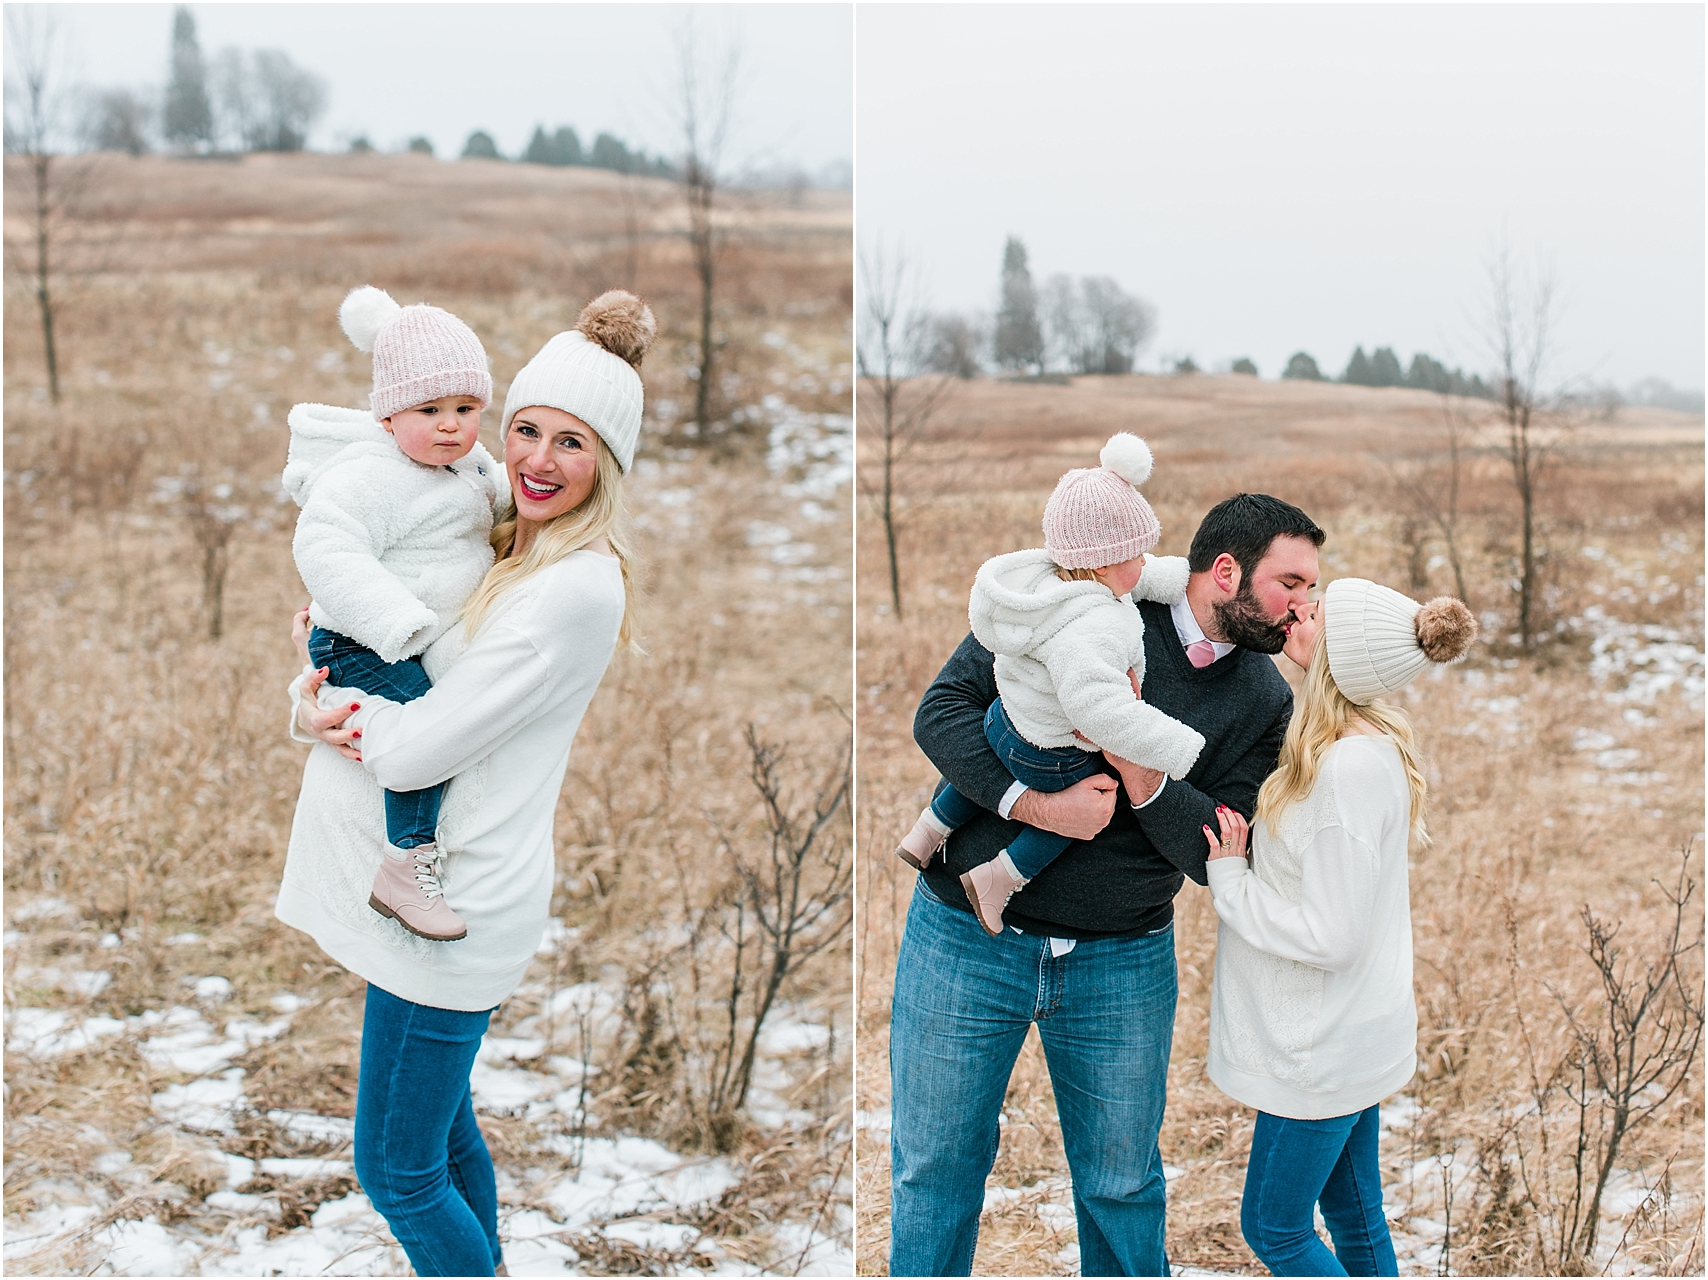 Minnesota winter maternity session Lake Ann Park Chanhassen photographed by Mallory Kiesow, Minnesota maternity photographer_011.jpg